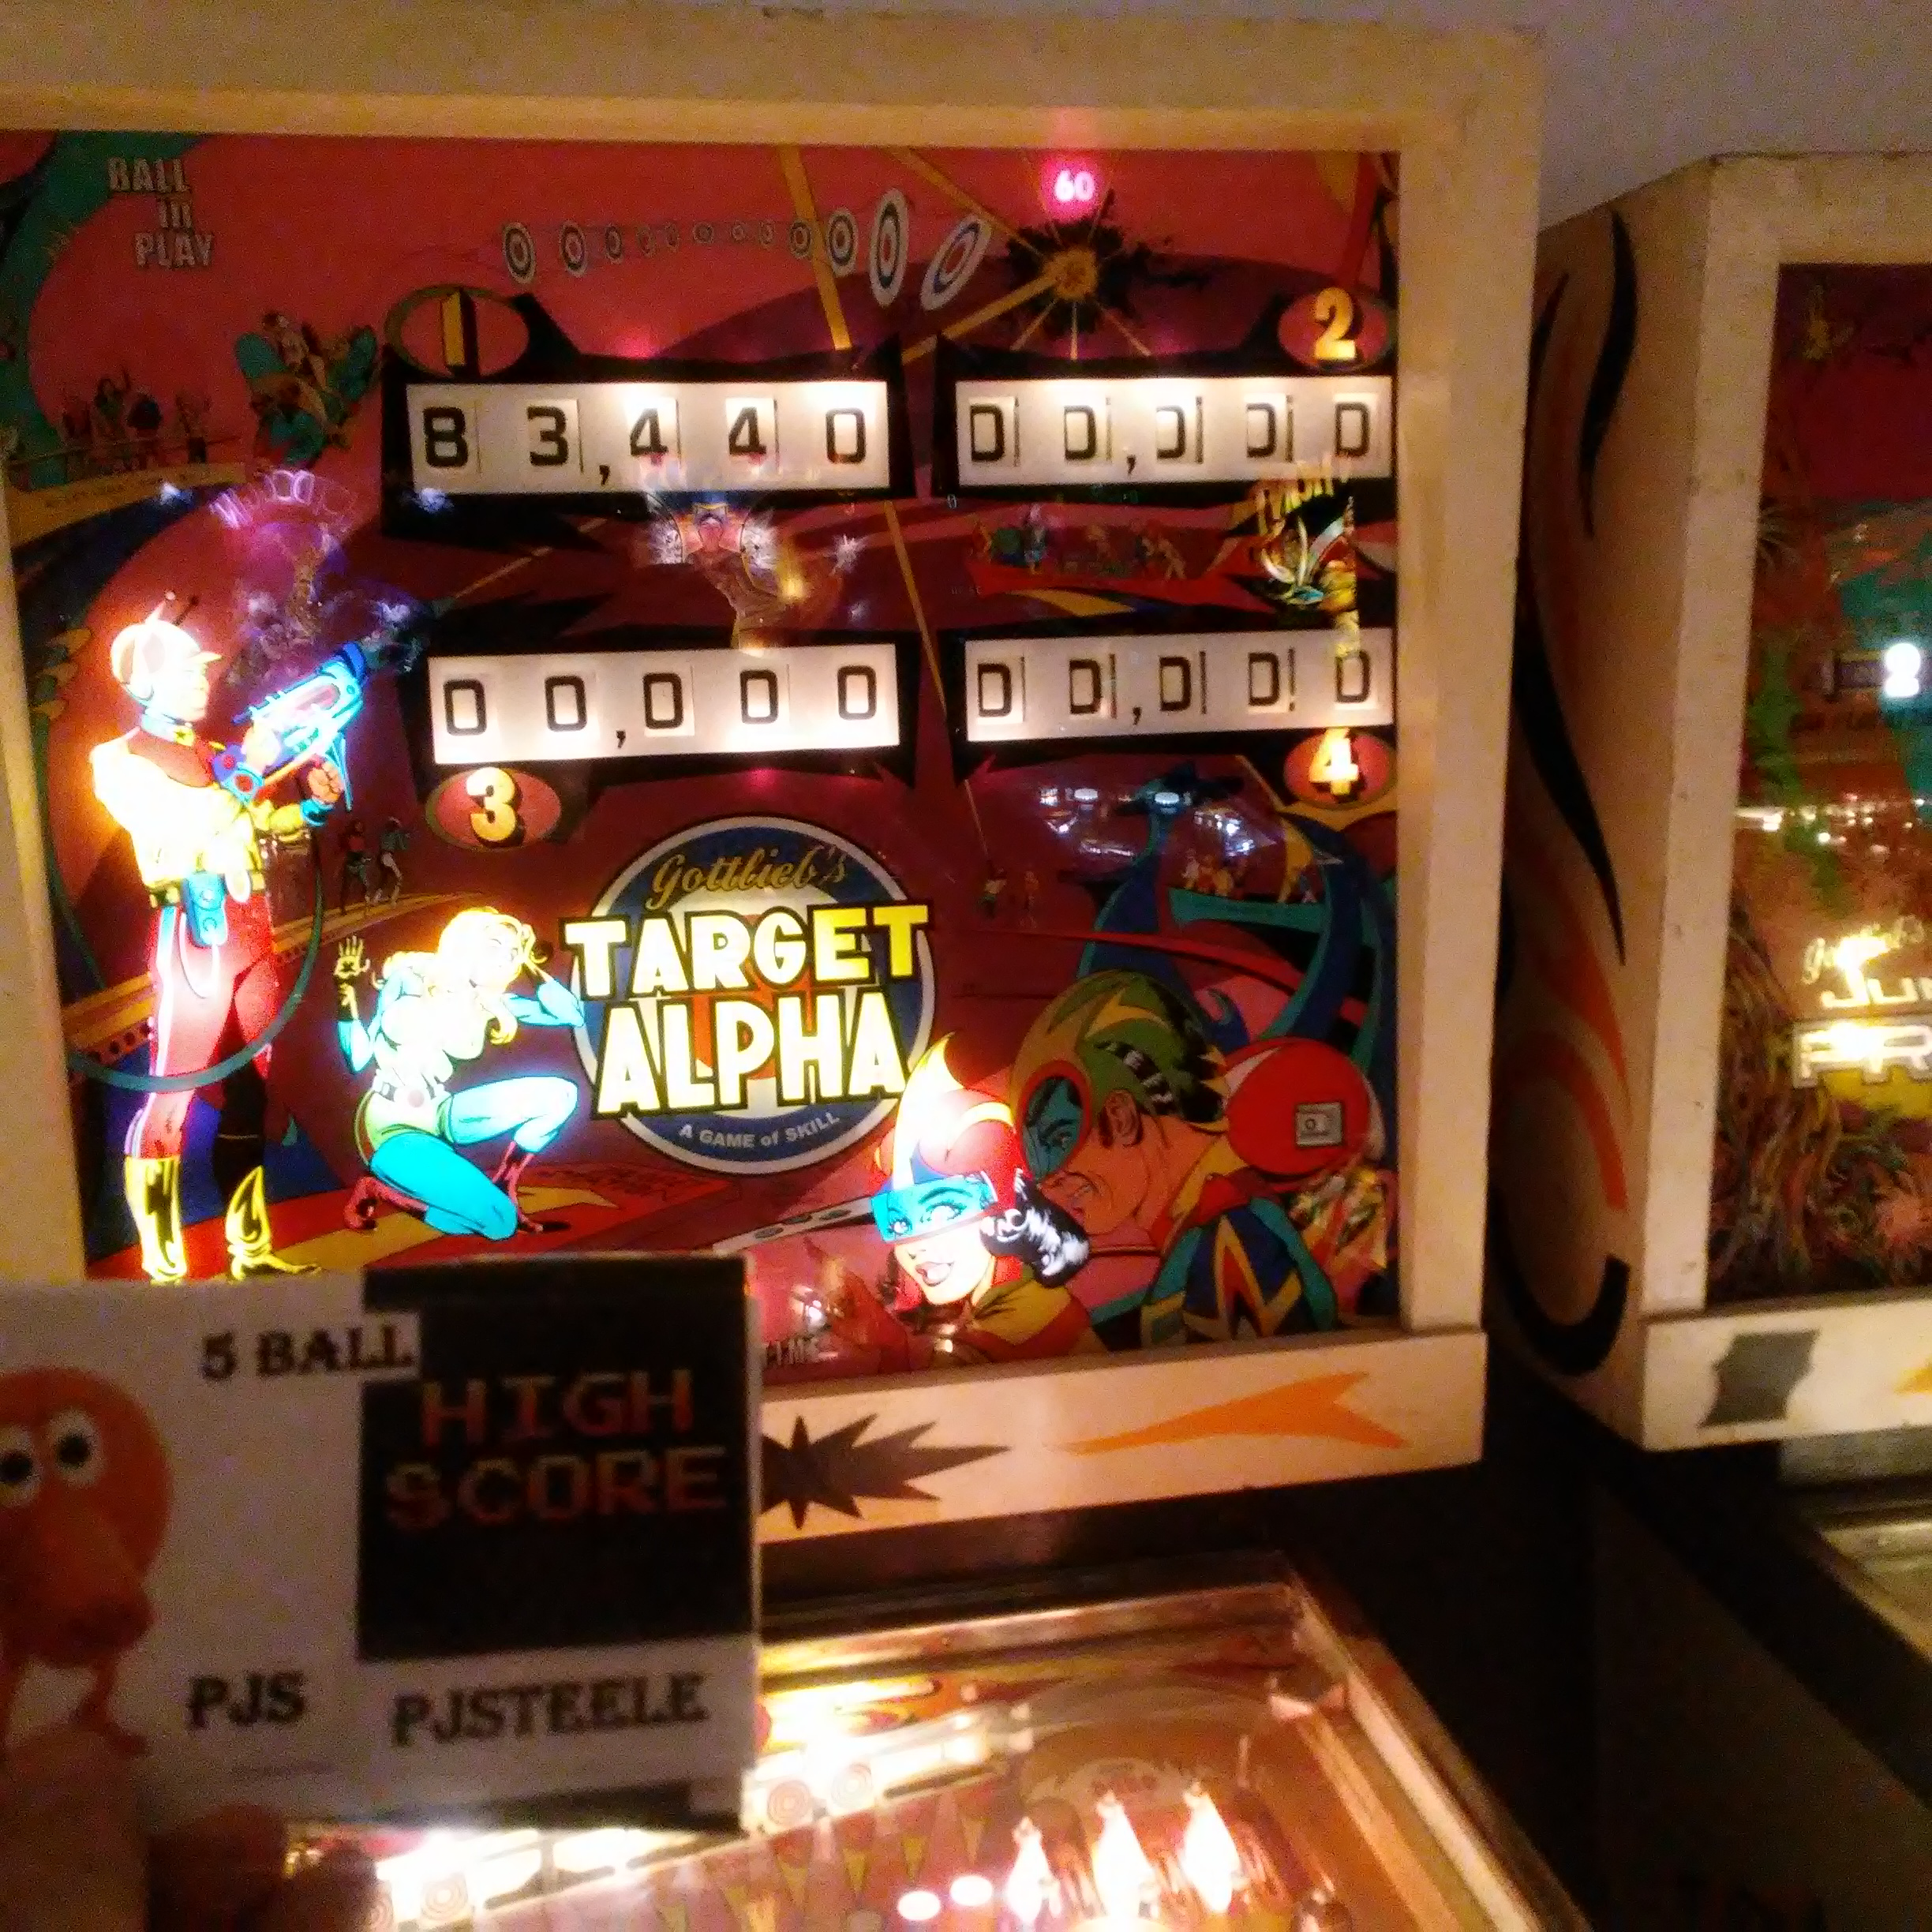 Pjsteele: Target Alpha (Pinball: 5 Balls) 83,440 points on 2018-03-03 19:10:14